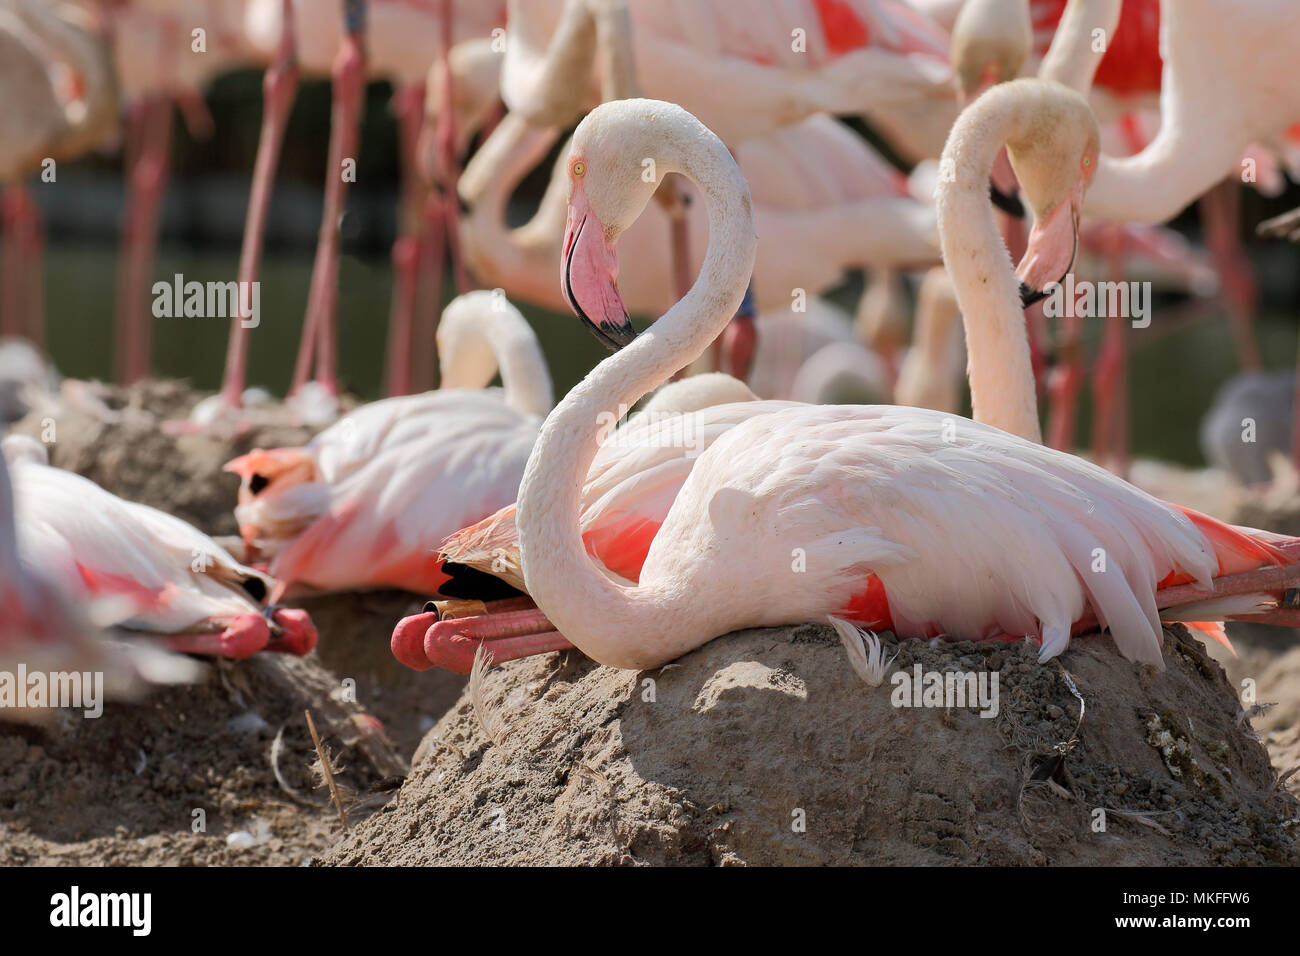 Greater Flamingo (Phoenicopterus roseus) brooding on mound, Tanzania - Stock Image